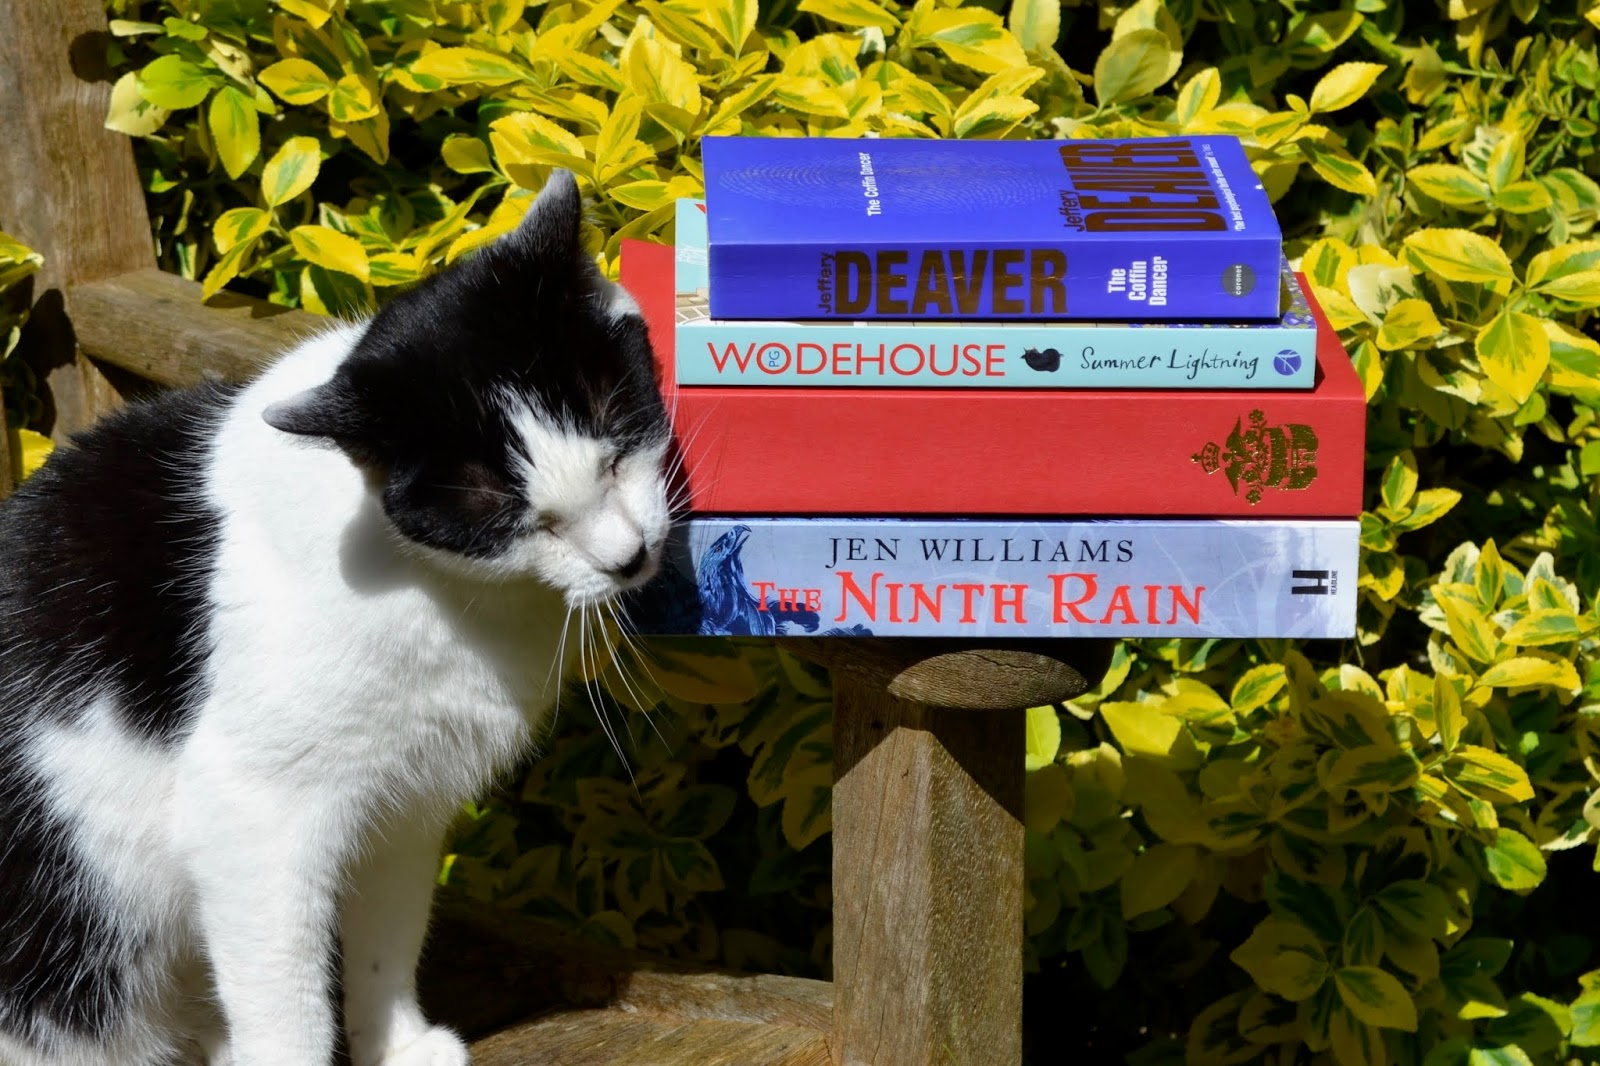 Cat next to The Coffin Dancer by Jeffery Deaver, Summer Lightning by P.G. Wodehouse, Jane Seymour: The Haunted Queen by Alison Weir and The Ninth Rain by Jen Williams.